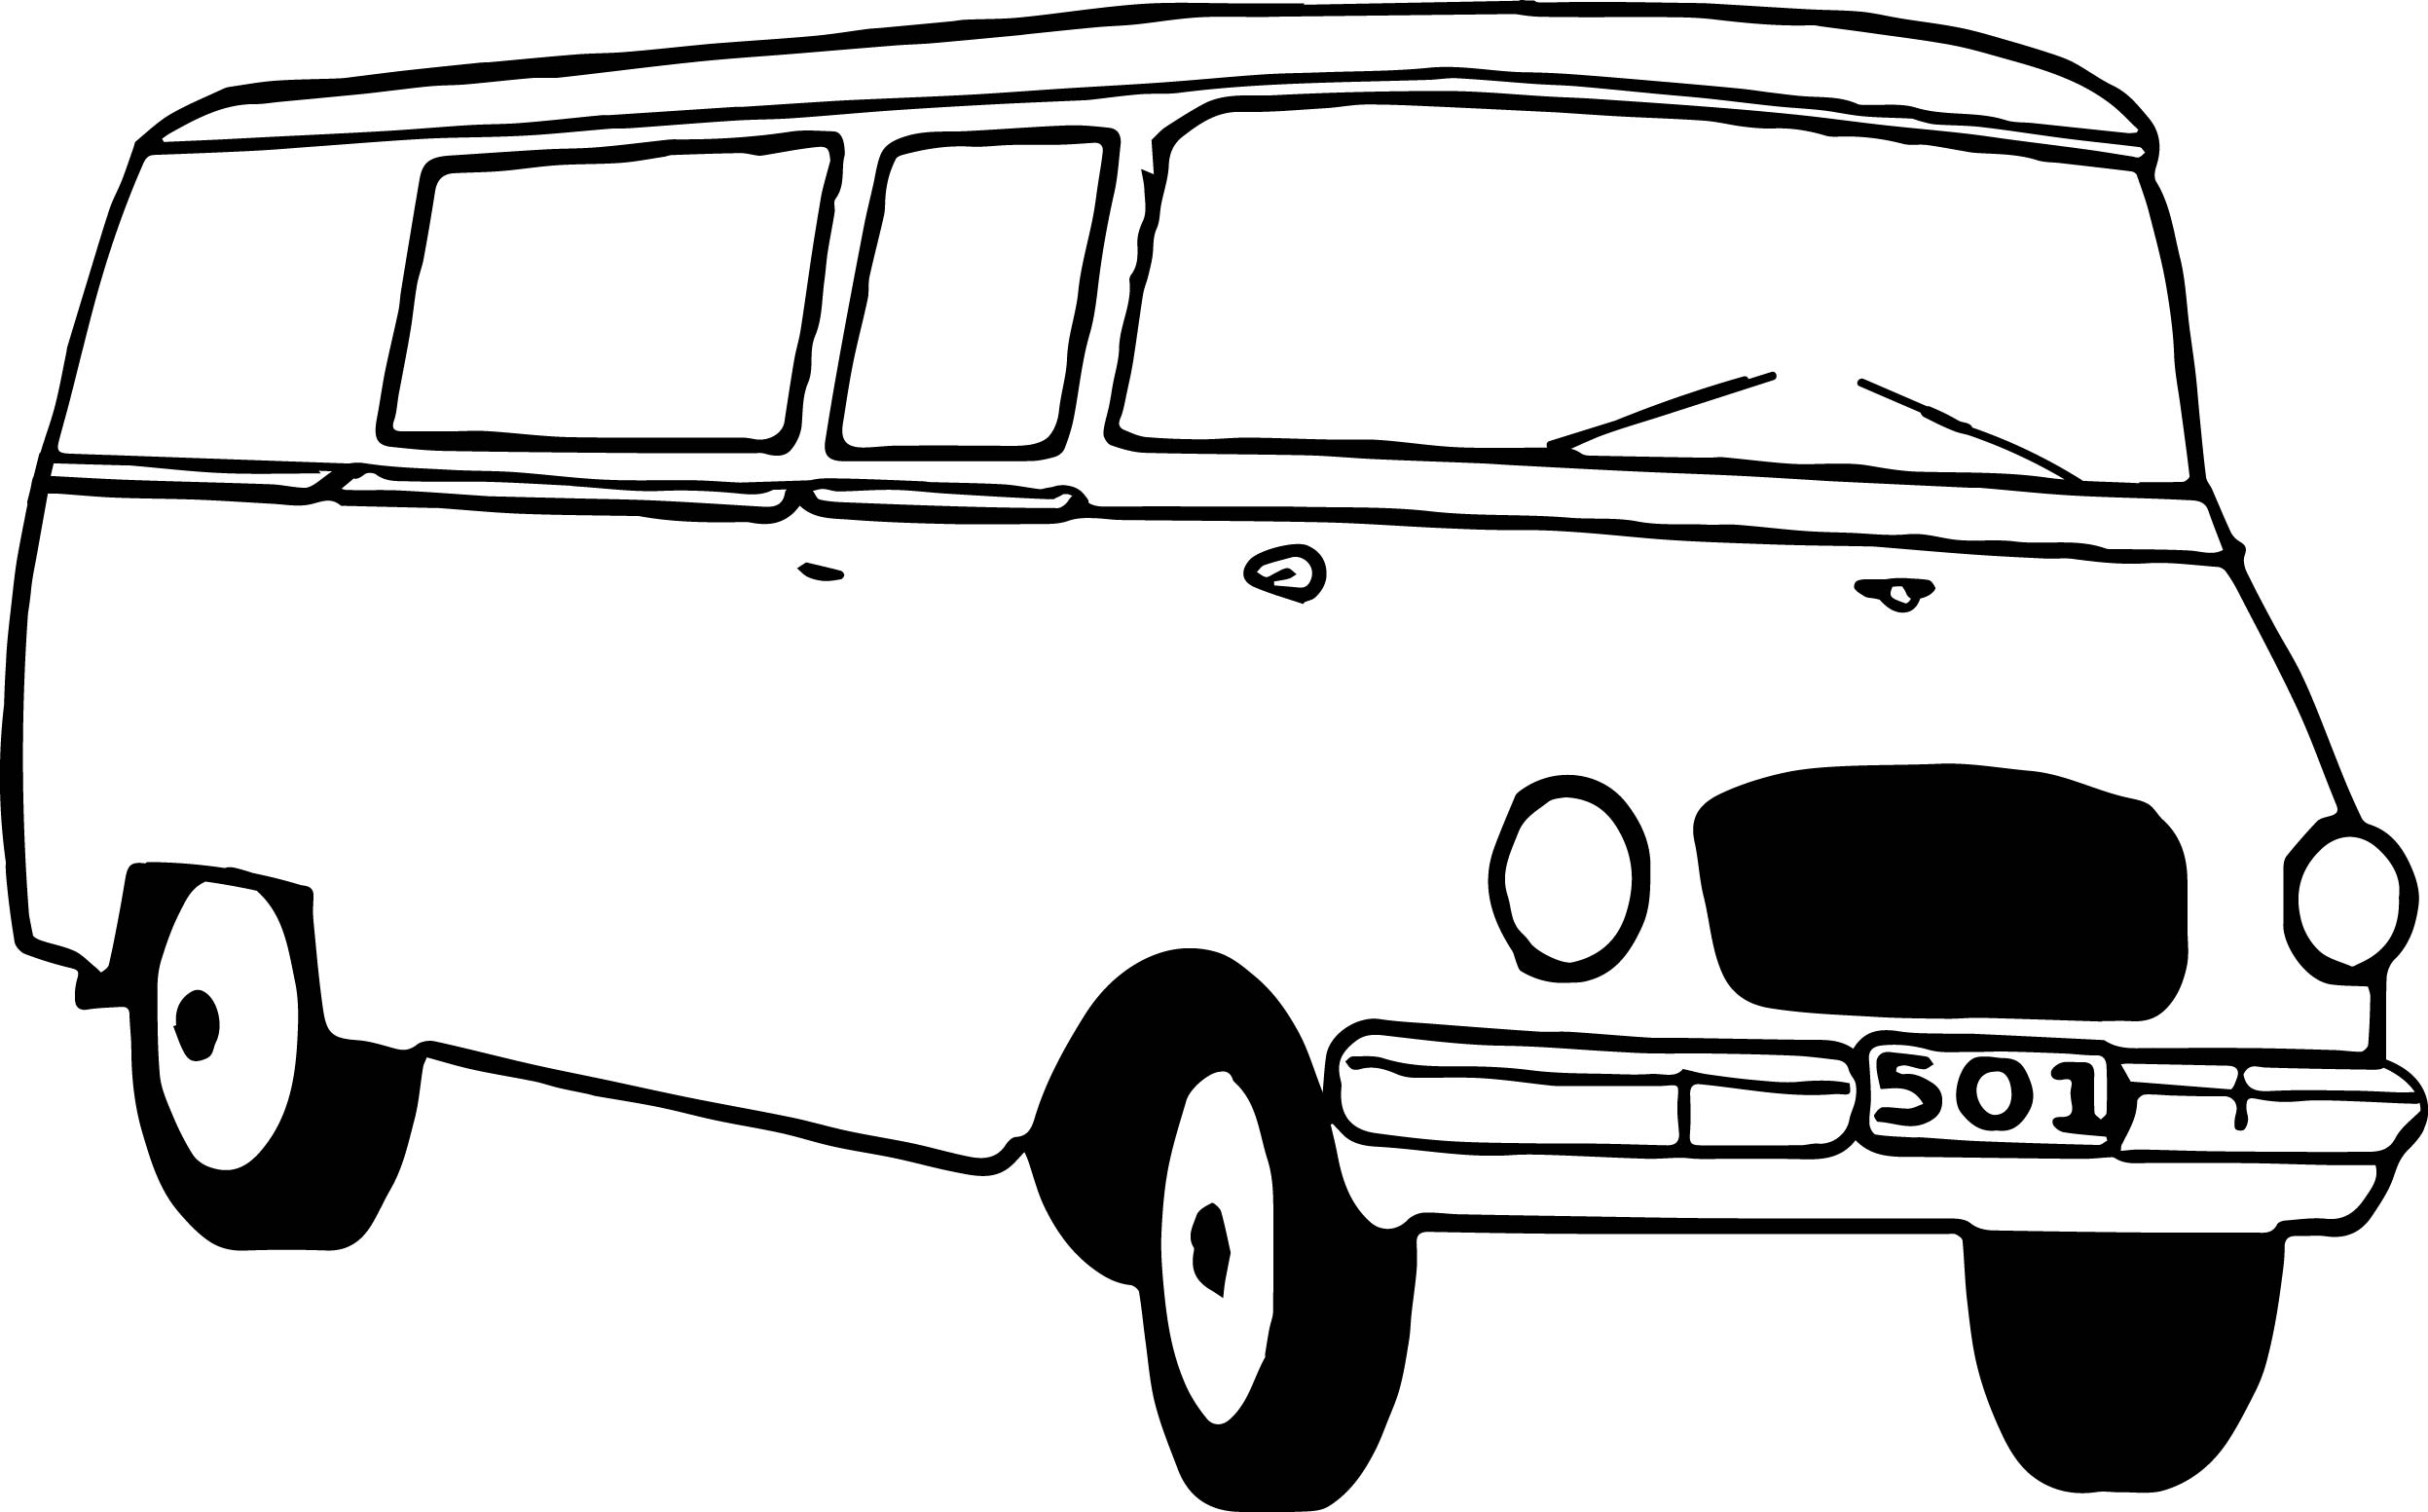 Basic Car Coloring Pages : Basic car coloring pages